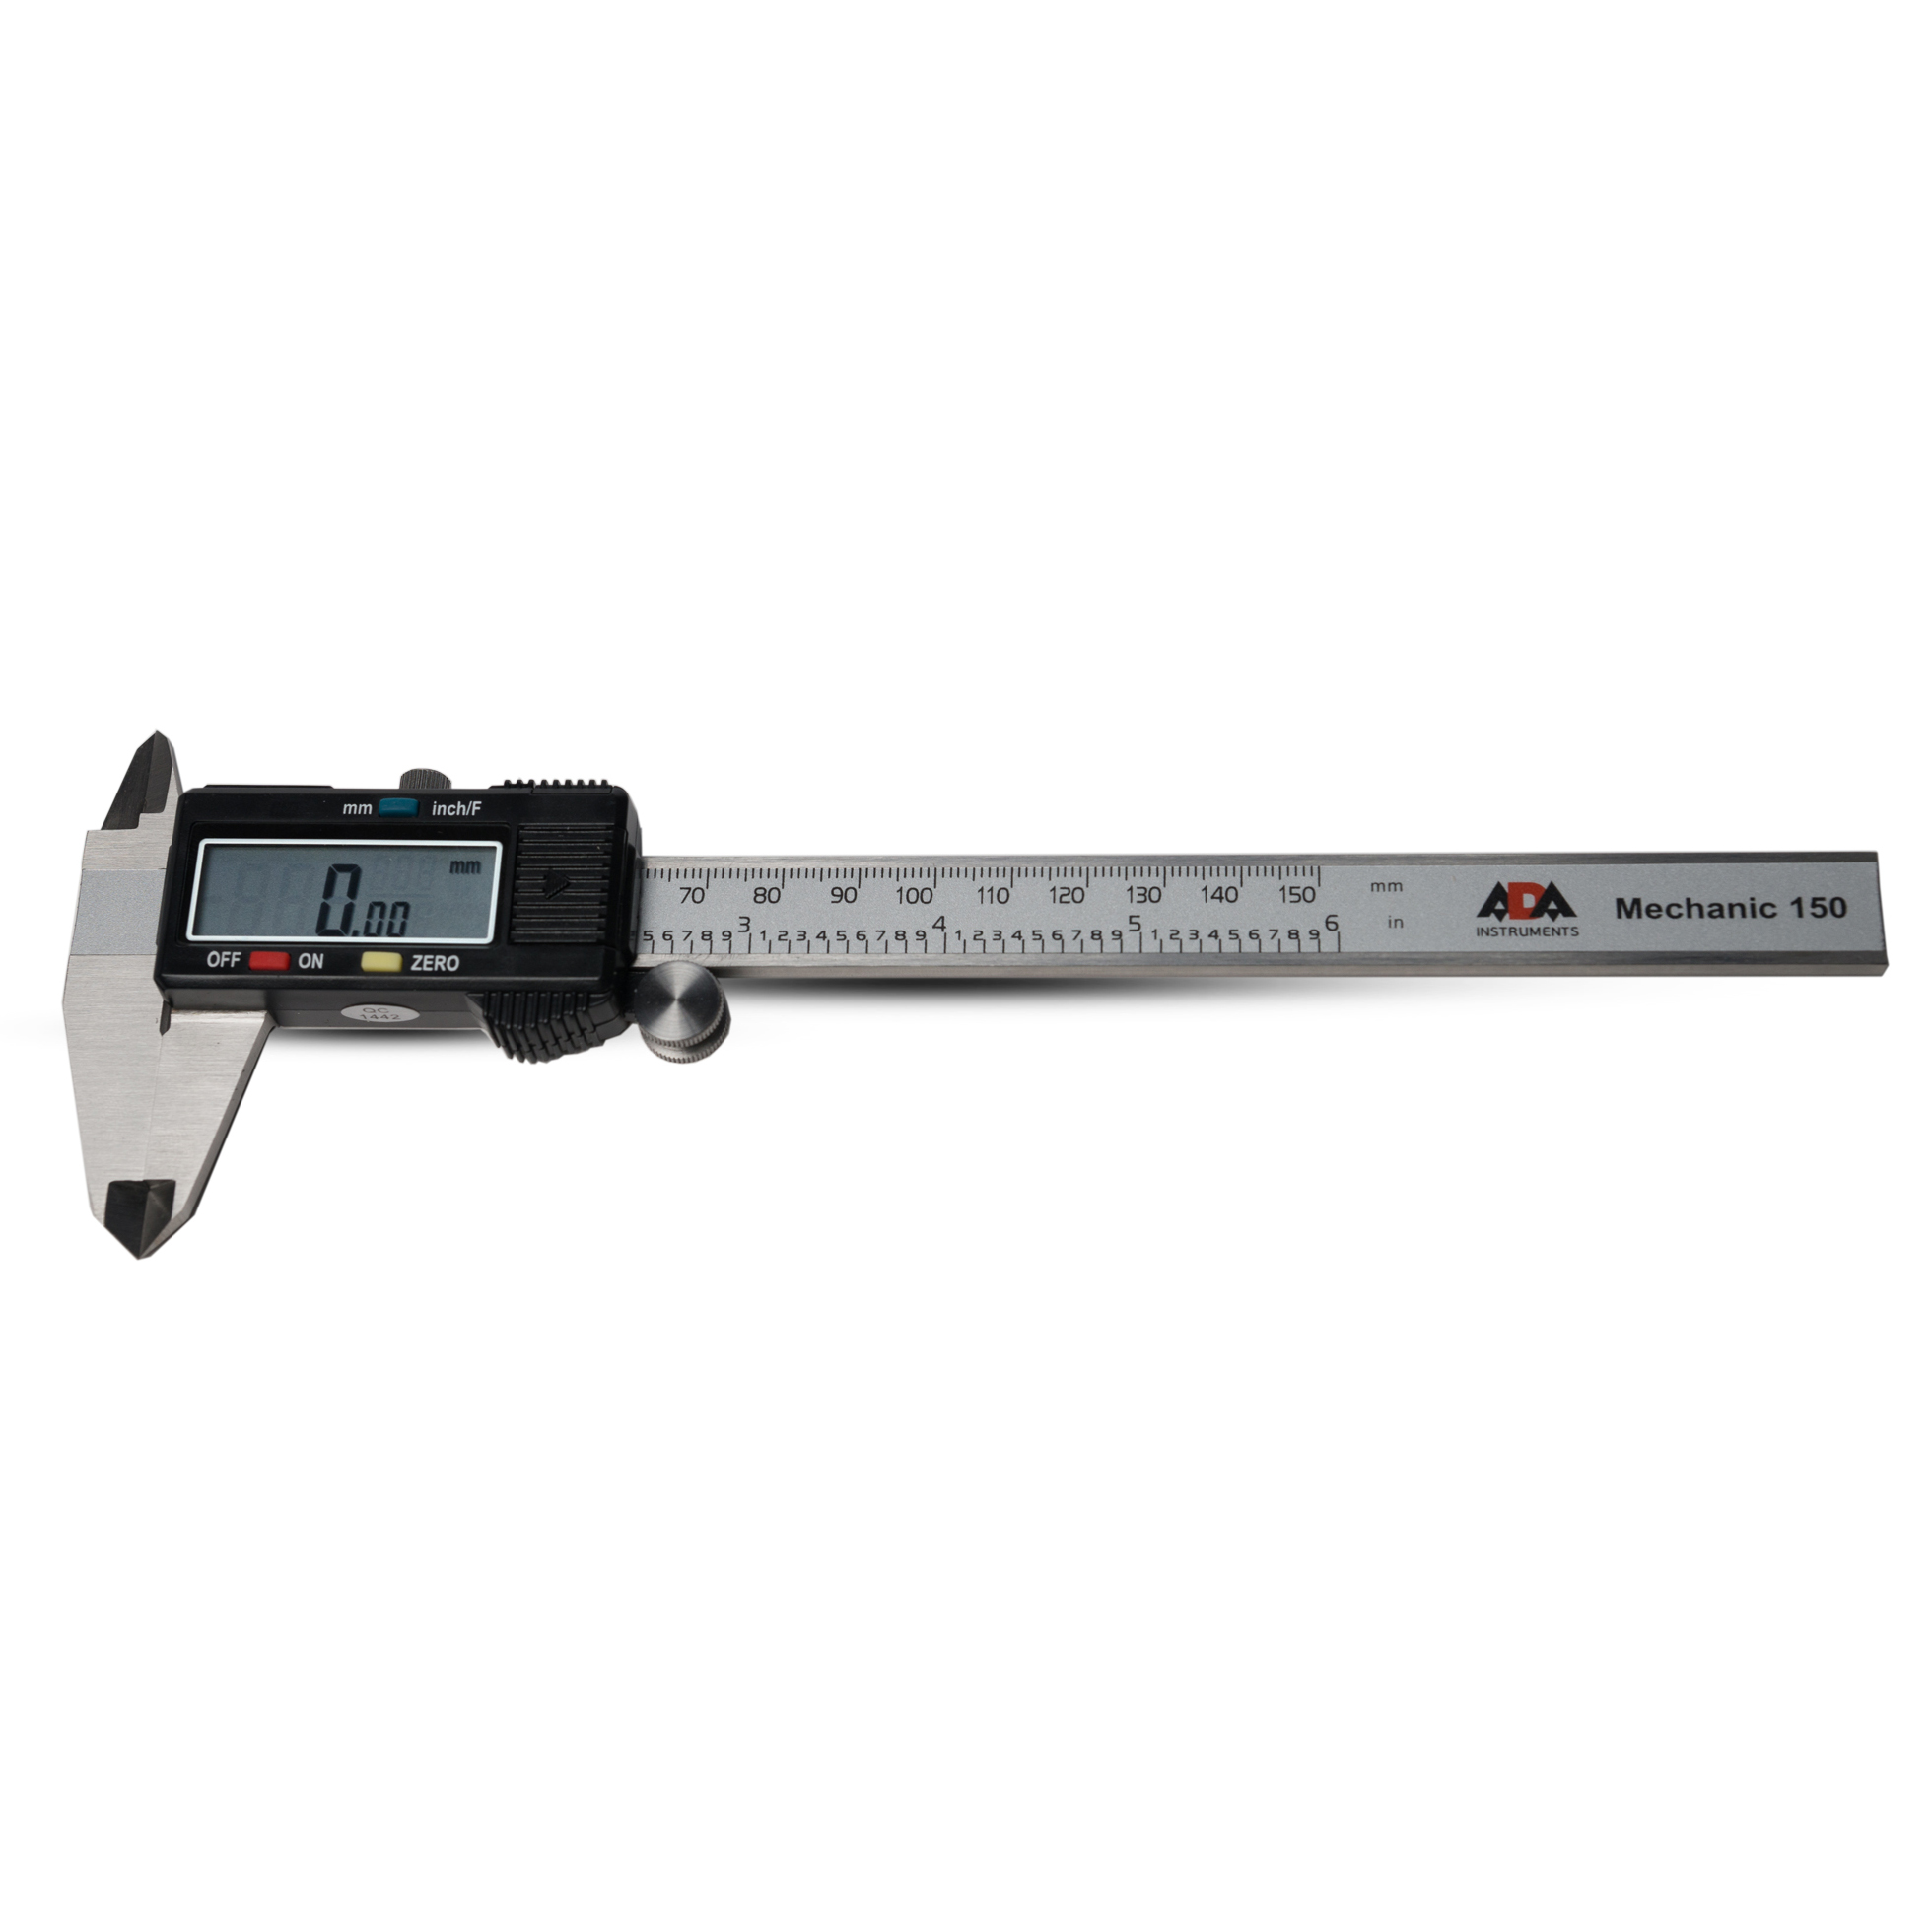 Digital caliper ADA Mechanic 150